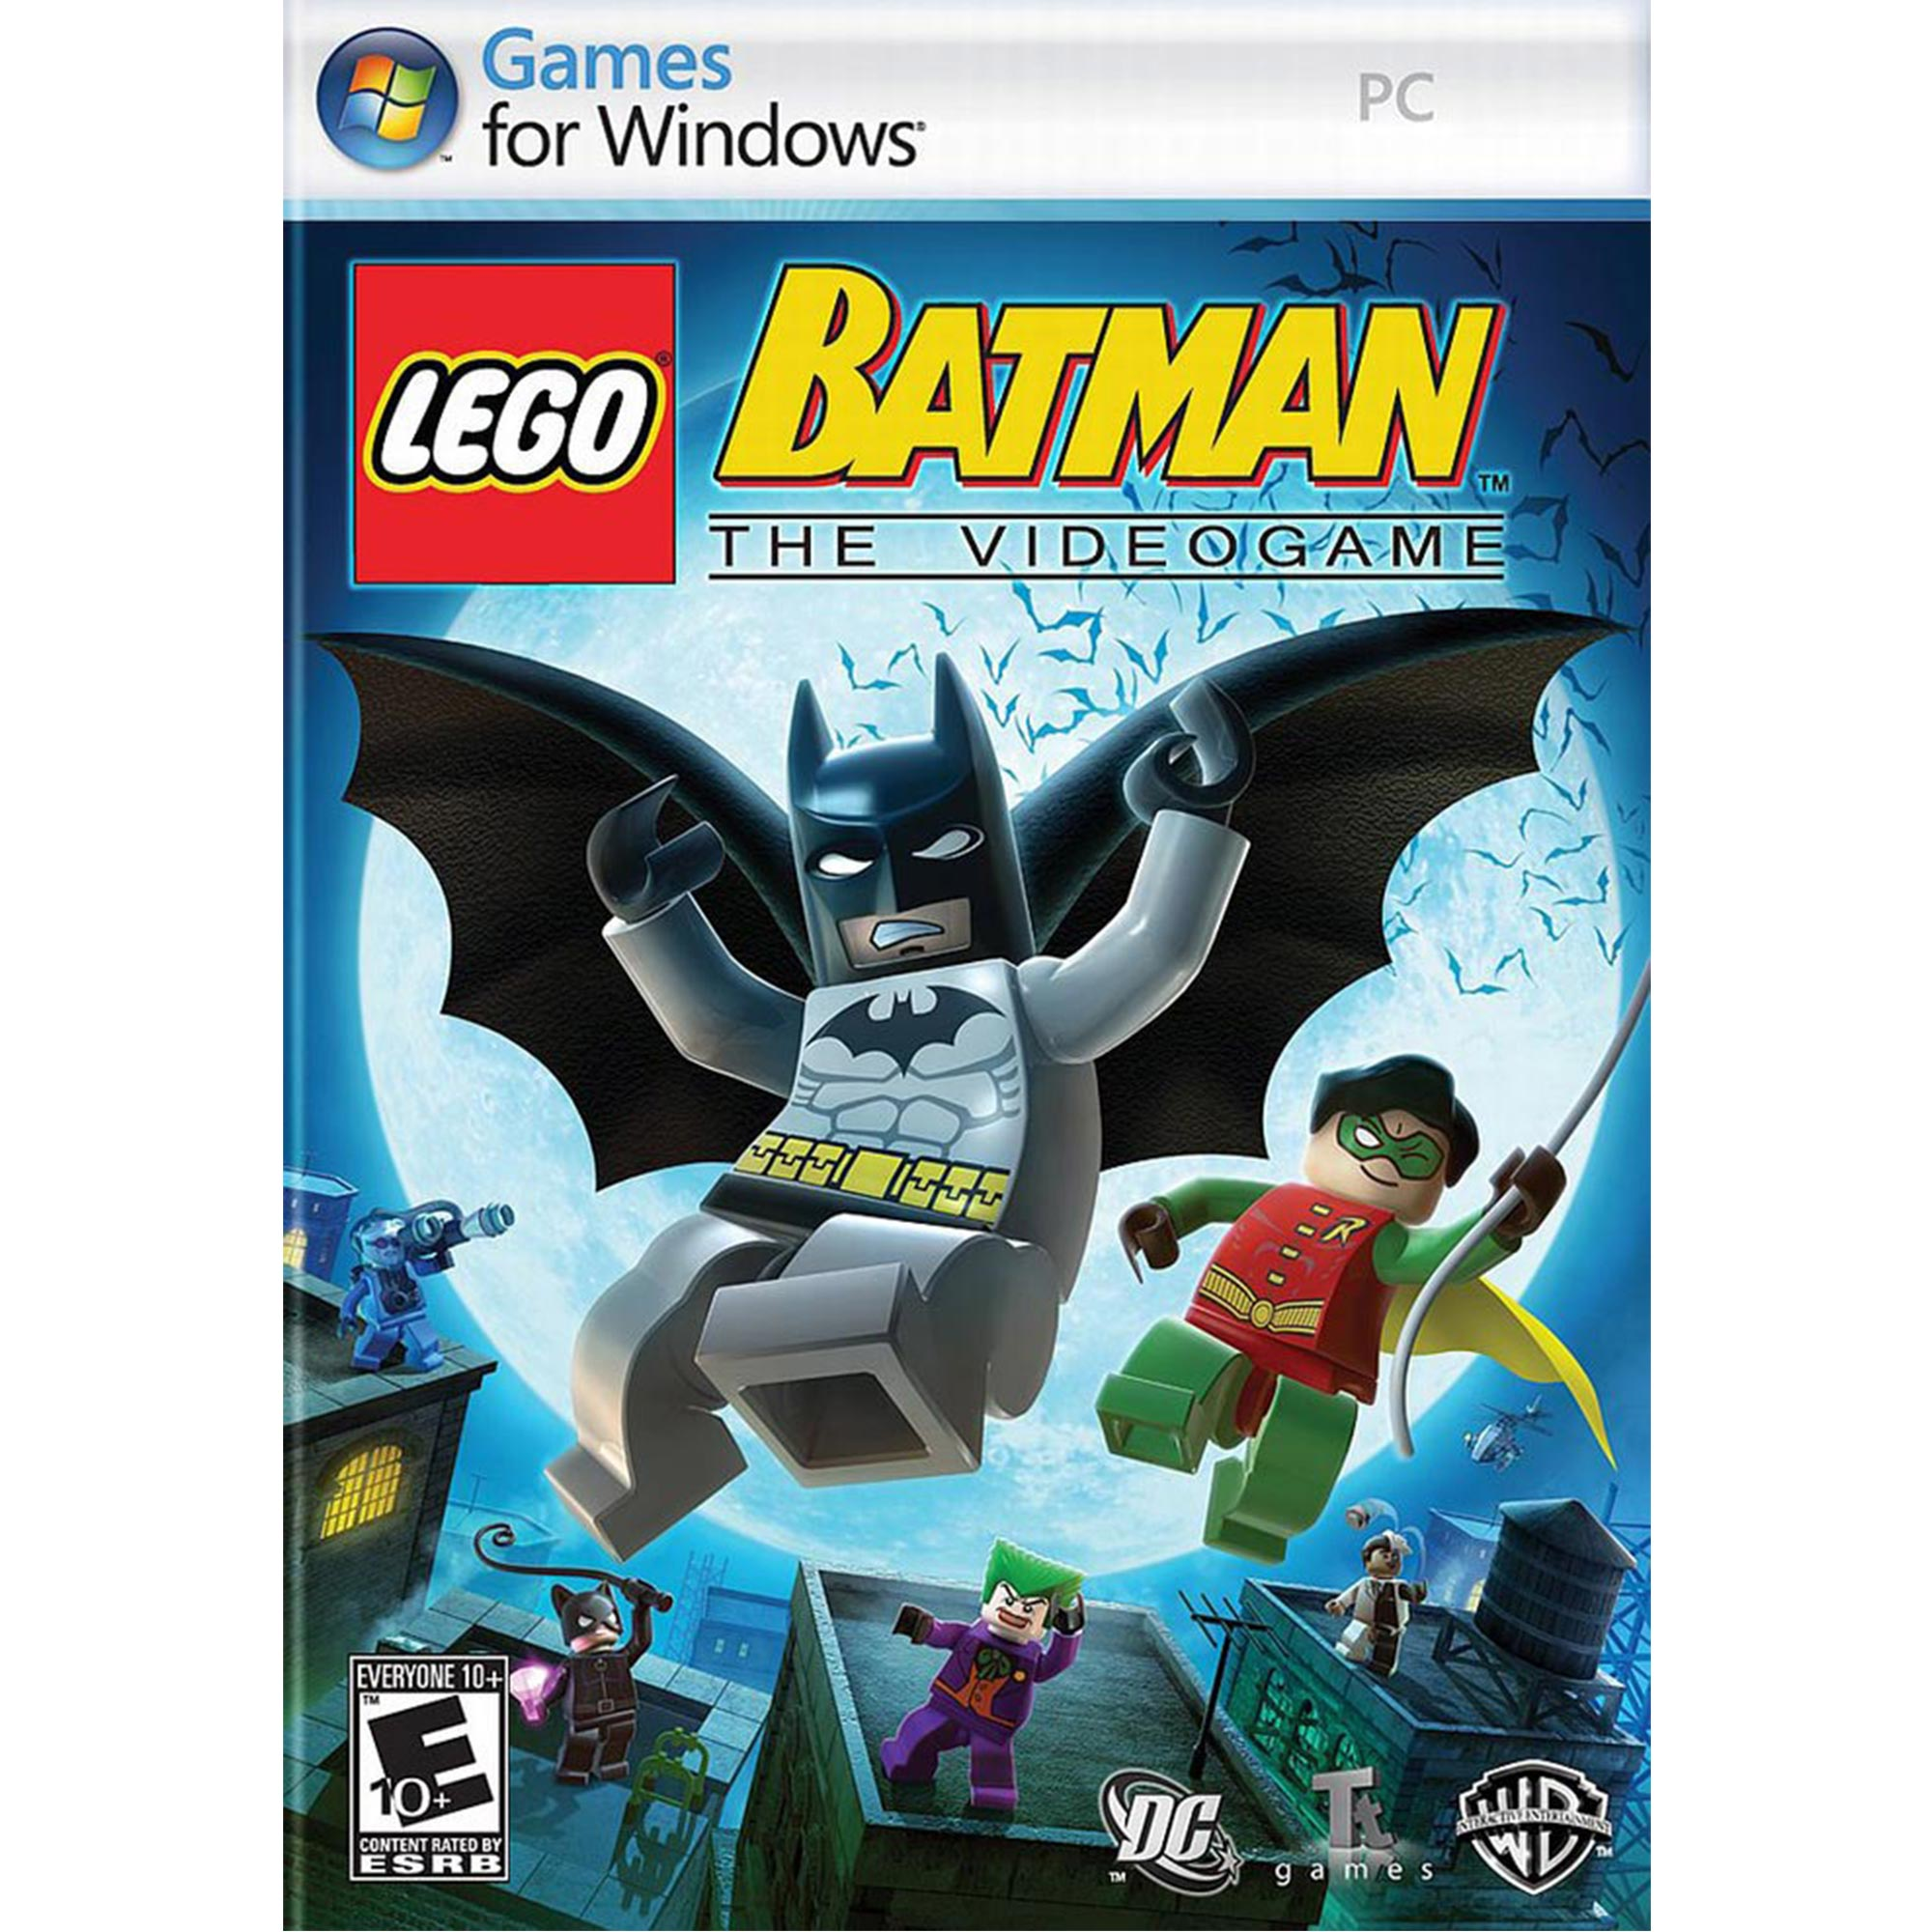 LEGO Batman (PC) (Email Delivery)